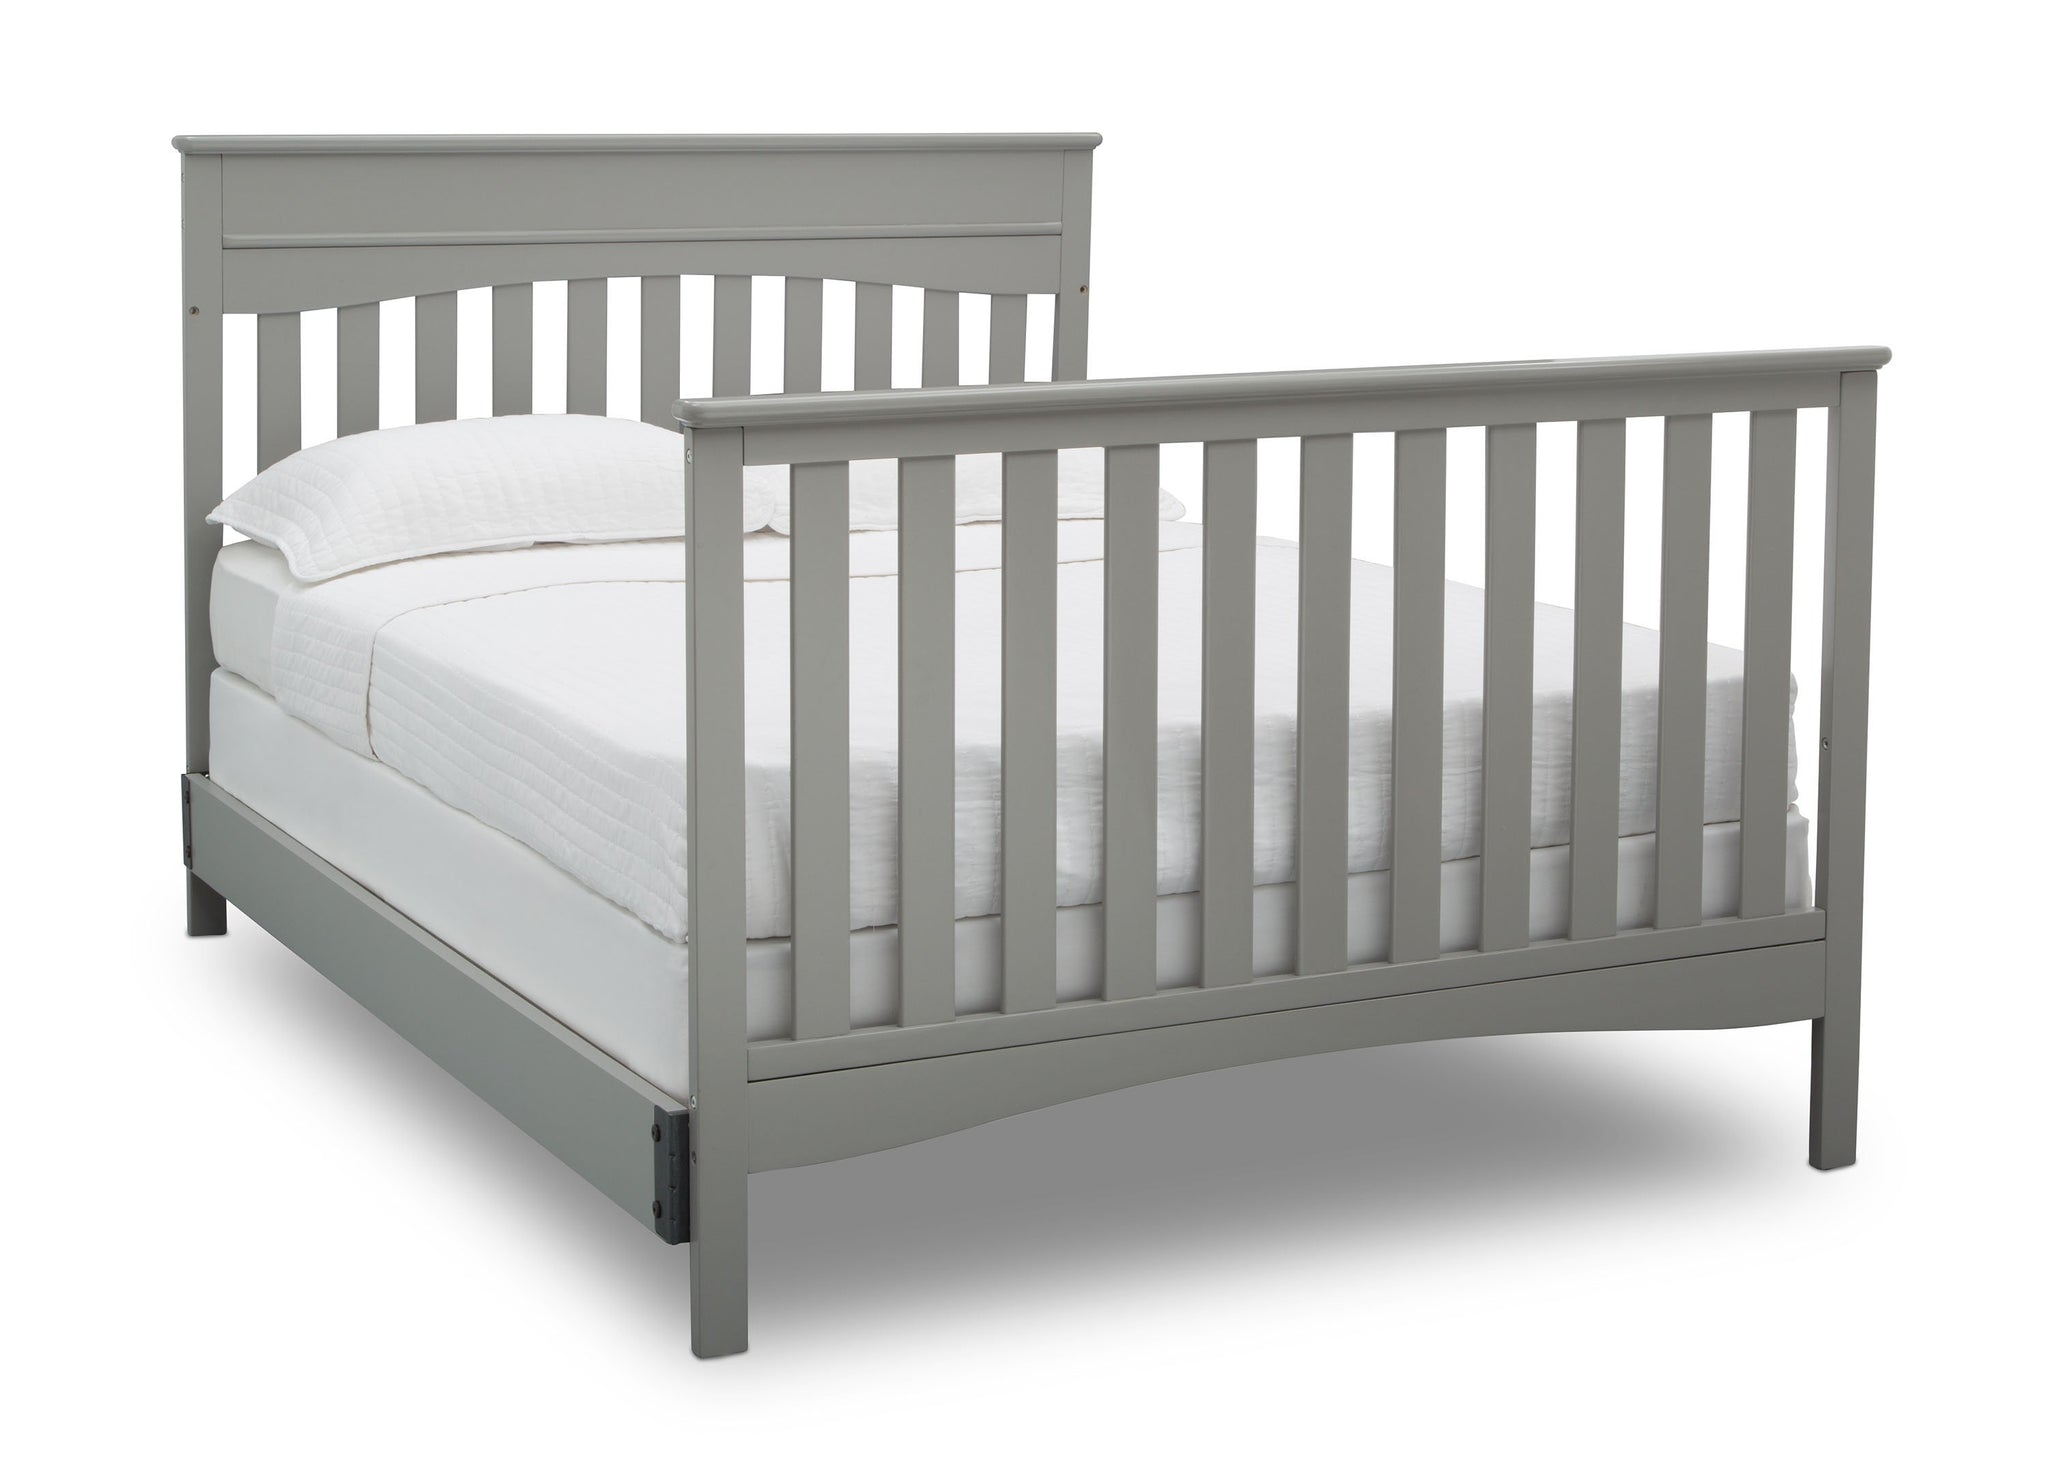 Delta Children Grey (026) Skylar 4-in-1 Convertible Crib (558150), Full Size Bed with Footboard, b5b